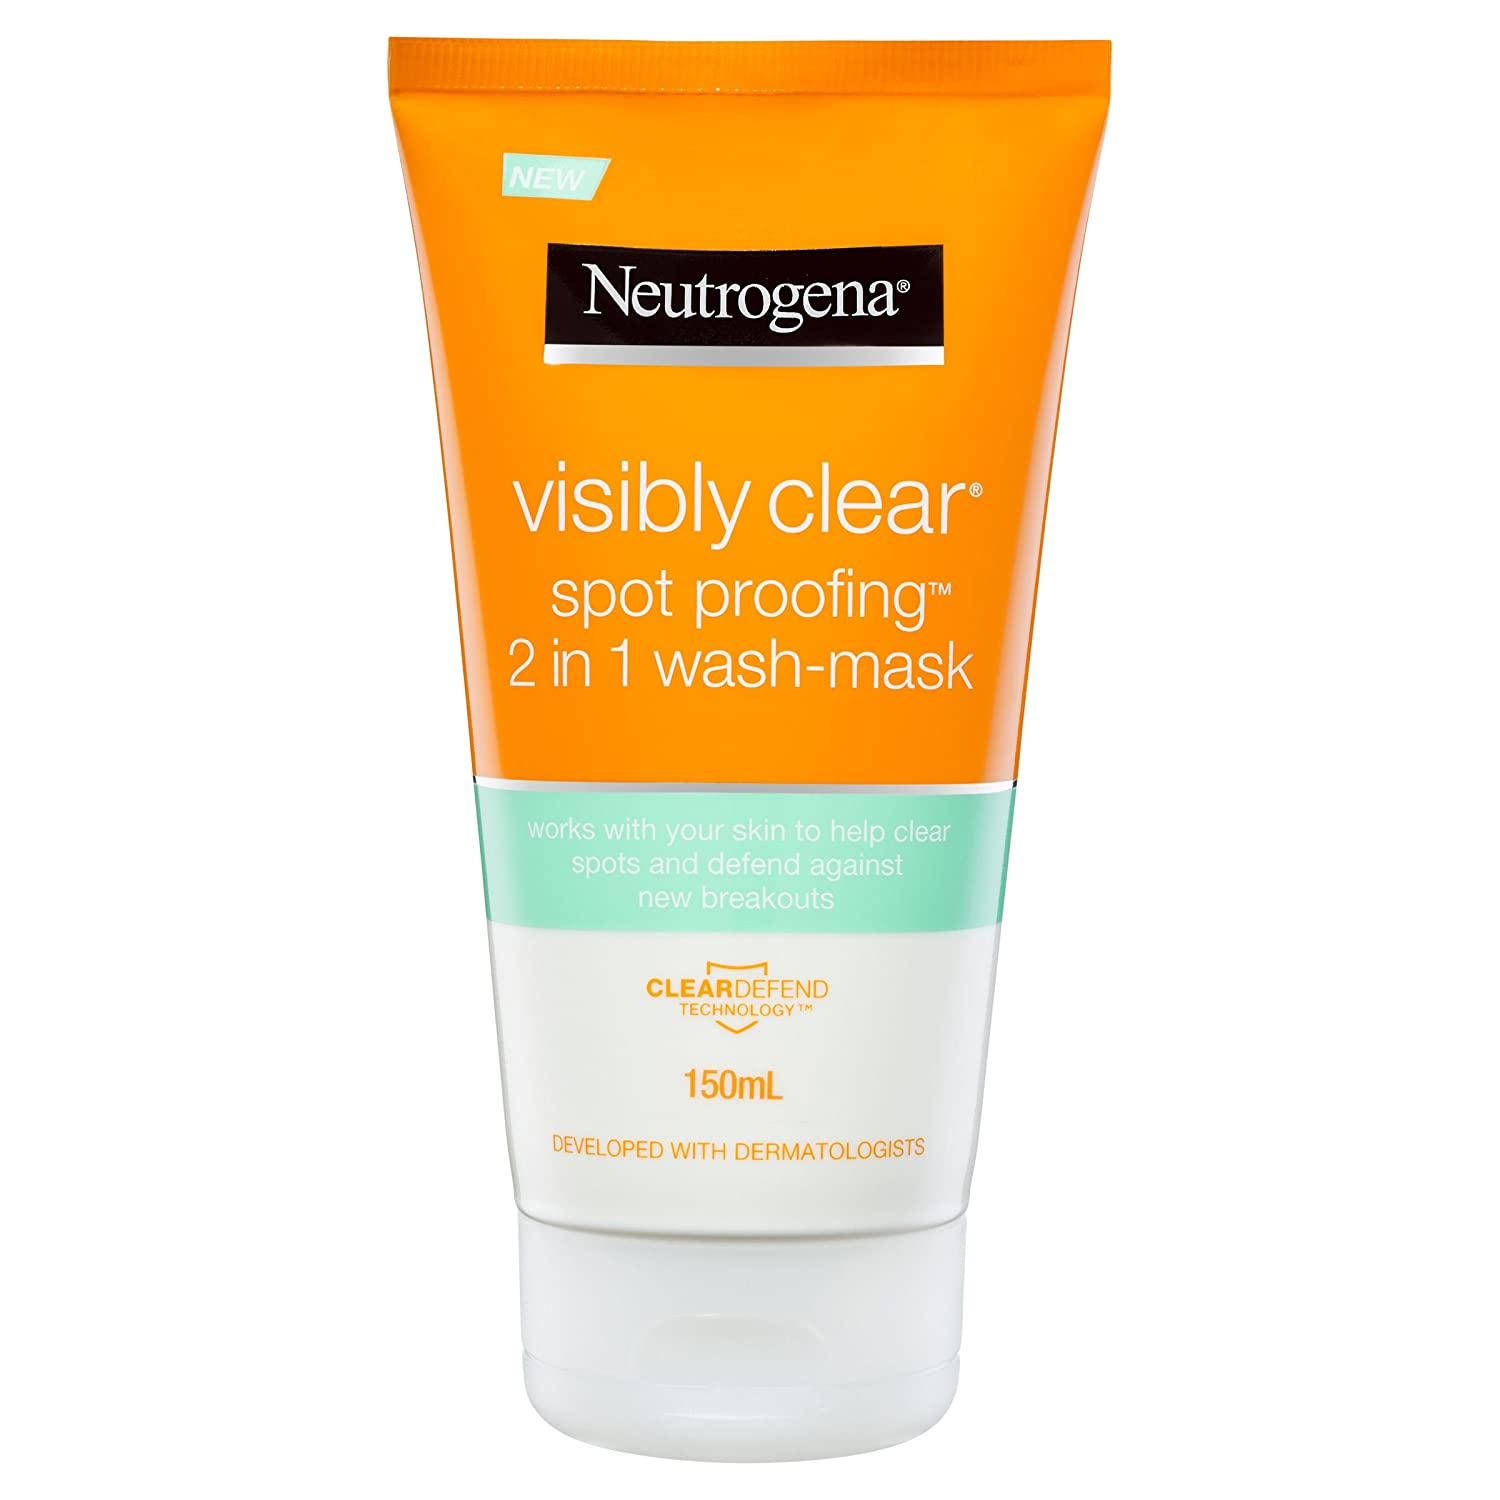 Neutrogena Visibly Clear Spot Proofing 2-in-1 Wash-Mask, 150ml J&J 11911